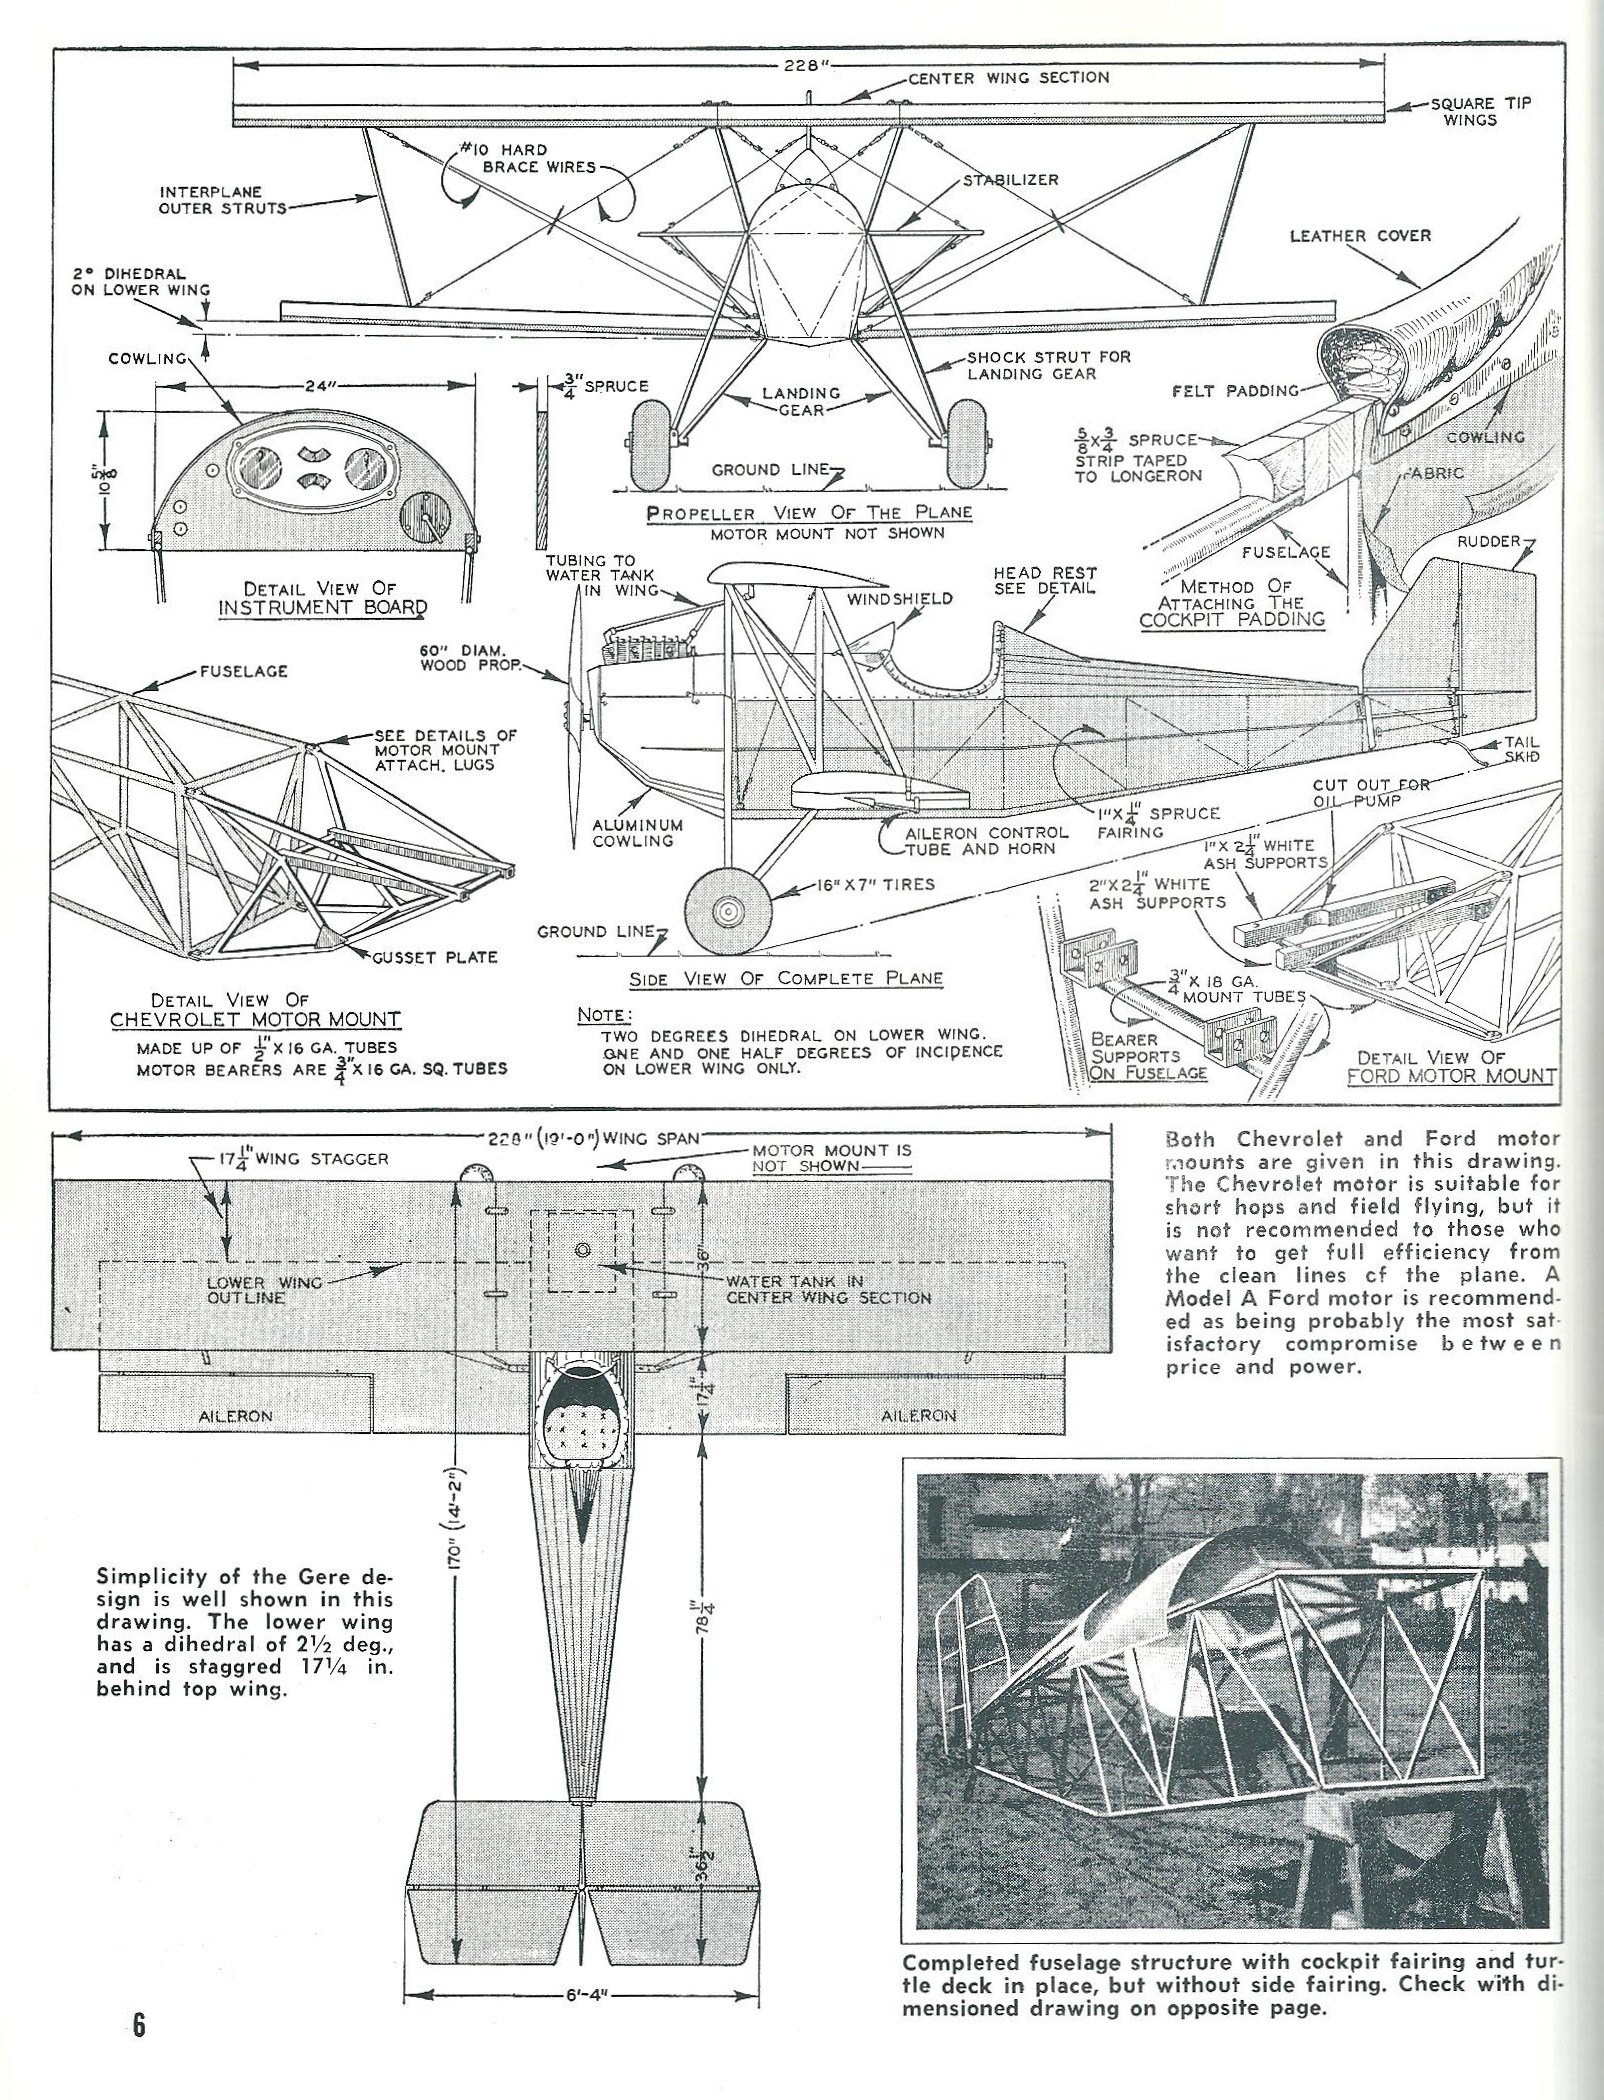 """1933 Flying Manual (Flying and Glider Manual): Amazon.co.uk: S. H. """"Wes""""  Schmid Paul H. Poberezny: Books"""